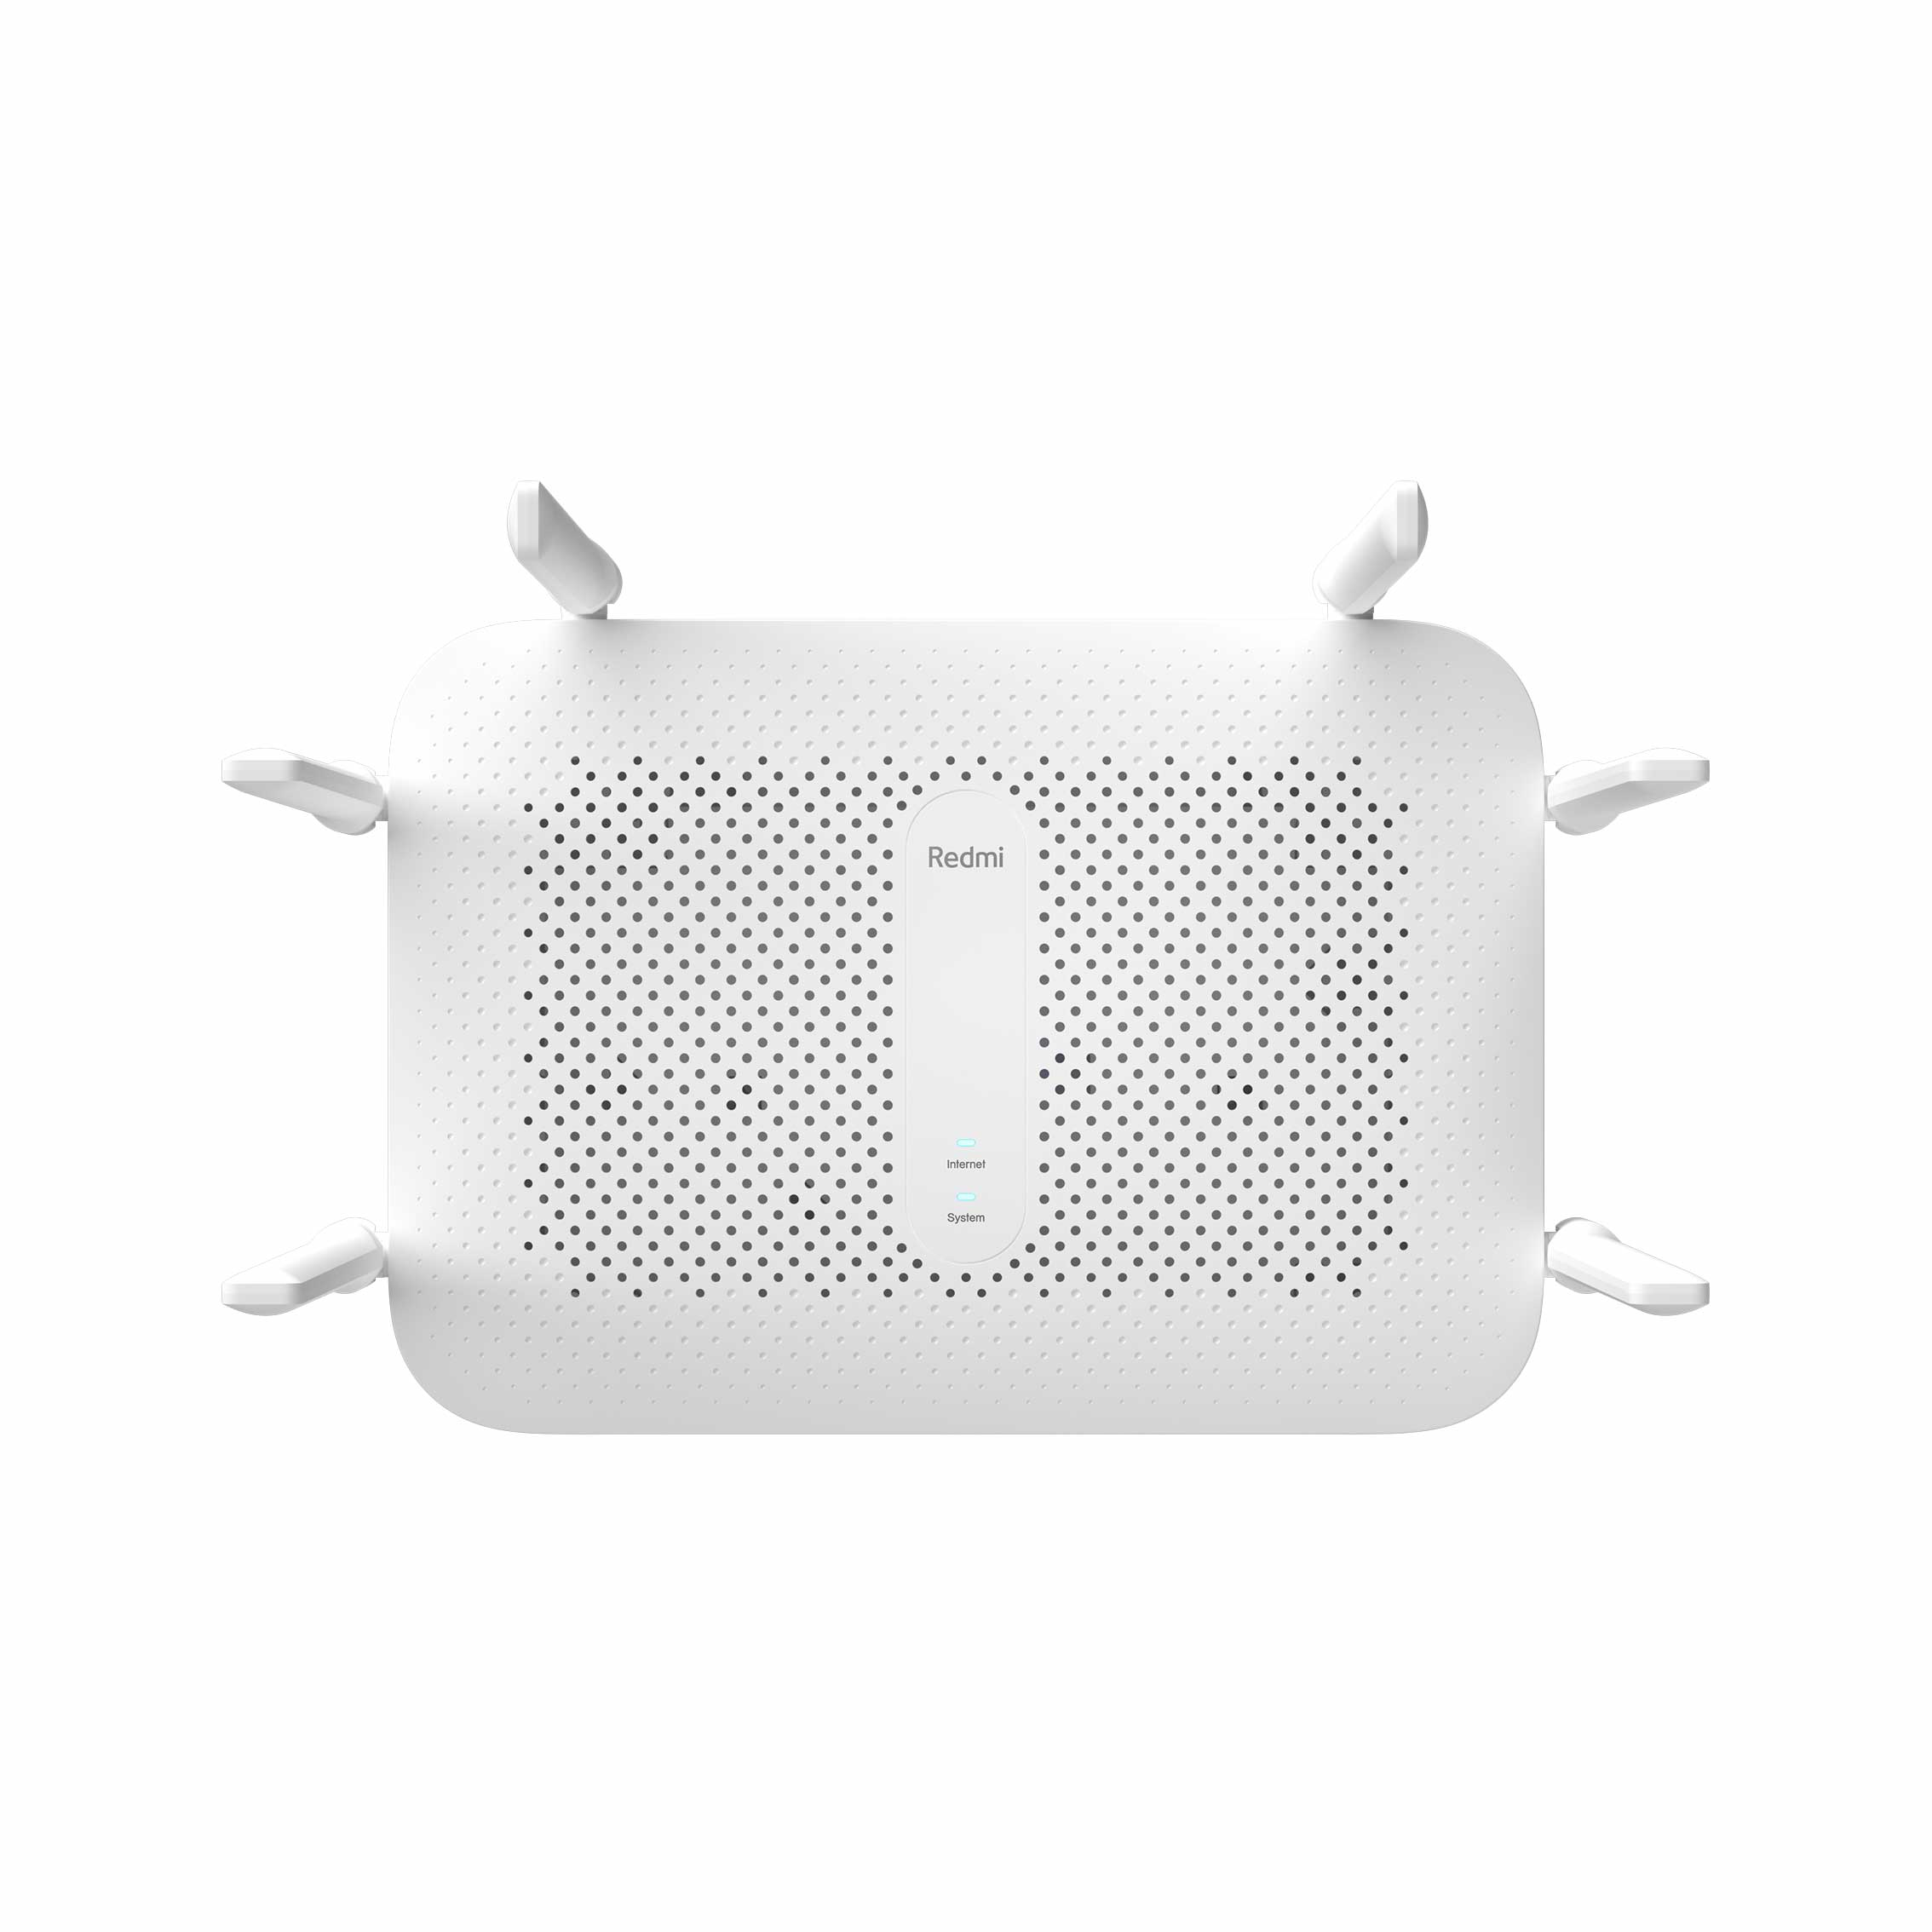 Xiaomi Redmi AC2100 Wireless Router with Gigabit and Dual-Band Repeater along with 6 High Gain Antennas and Wider Coverage 3